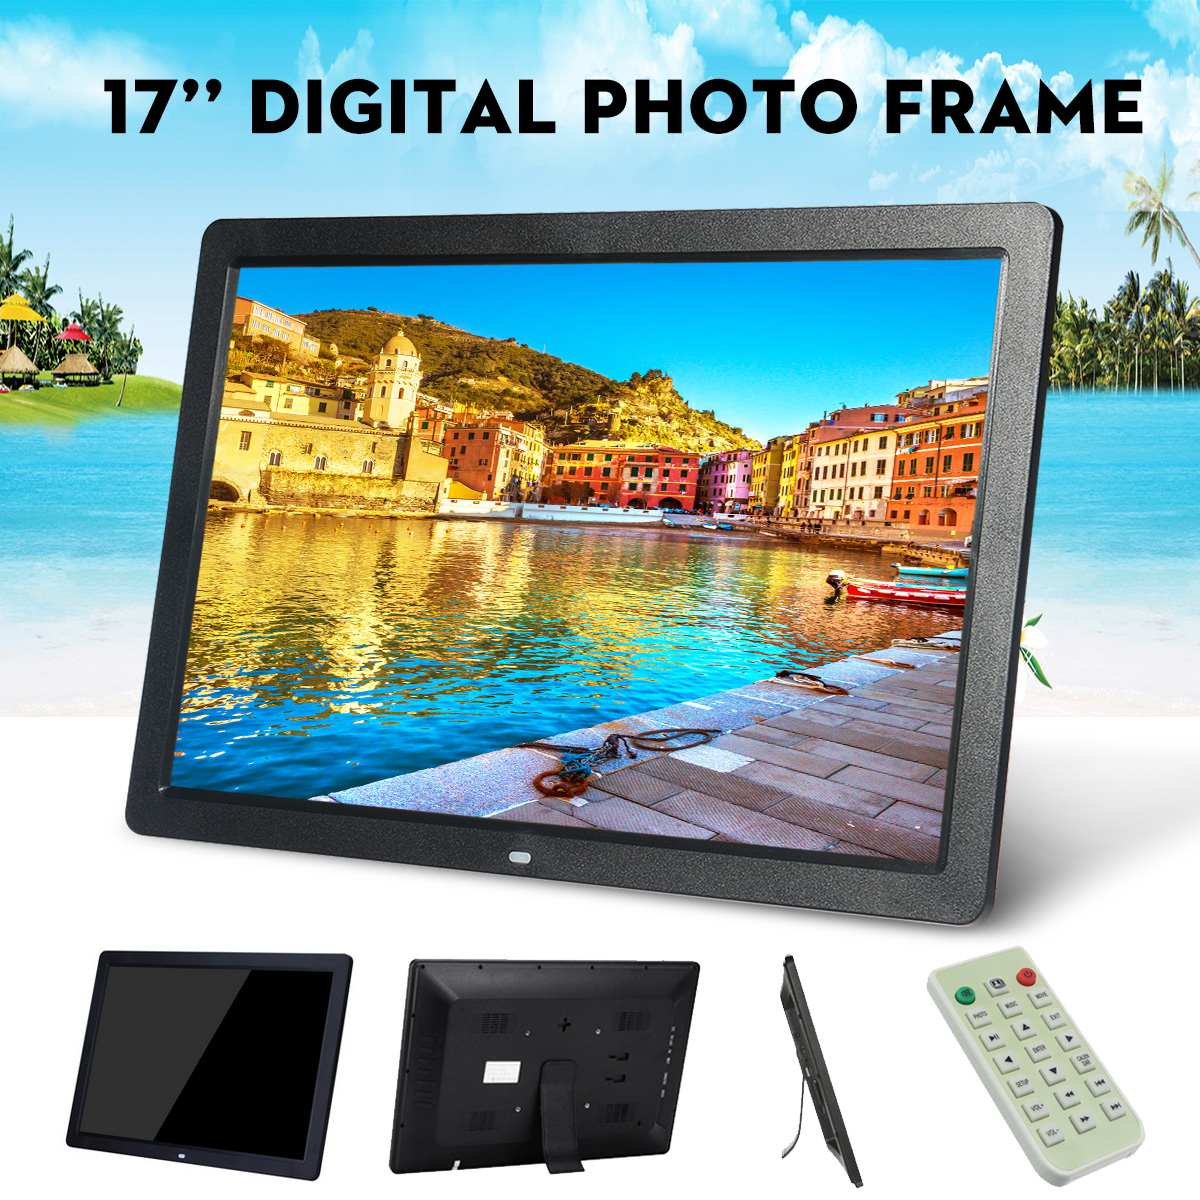 Multifunction Advertising Machine of Electronic Photo Frames,Black MP3 Music 1080P HD Video Playback with HDMI ZQG BEAUTEY 18.5 inch Digital Photo Frame